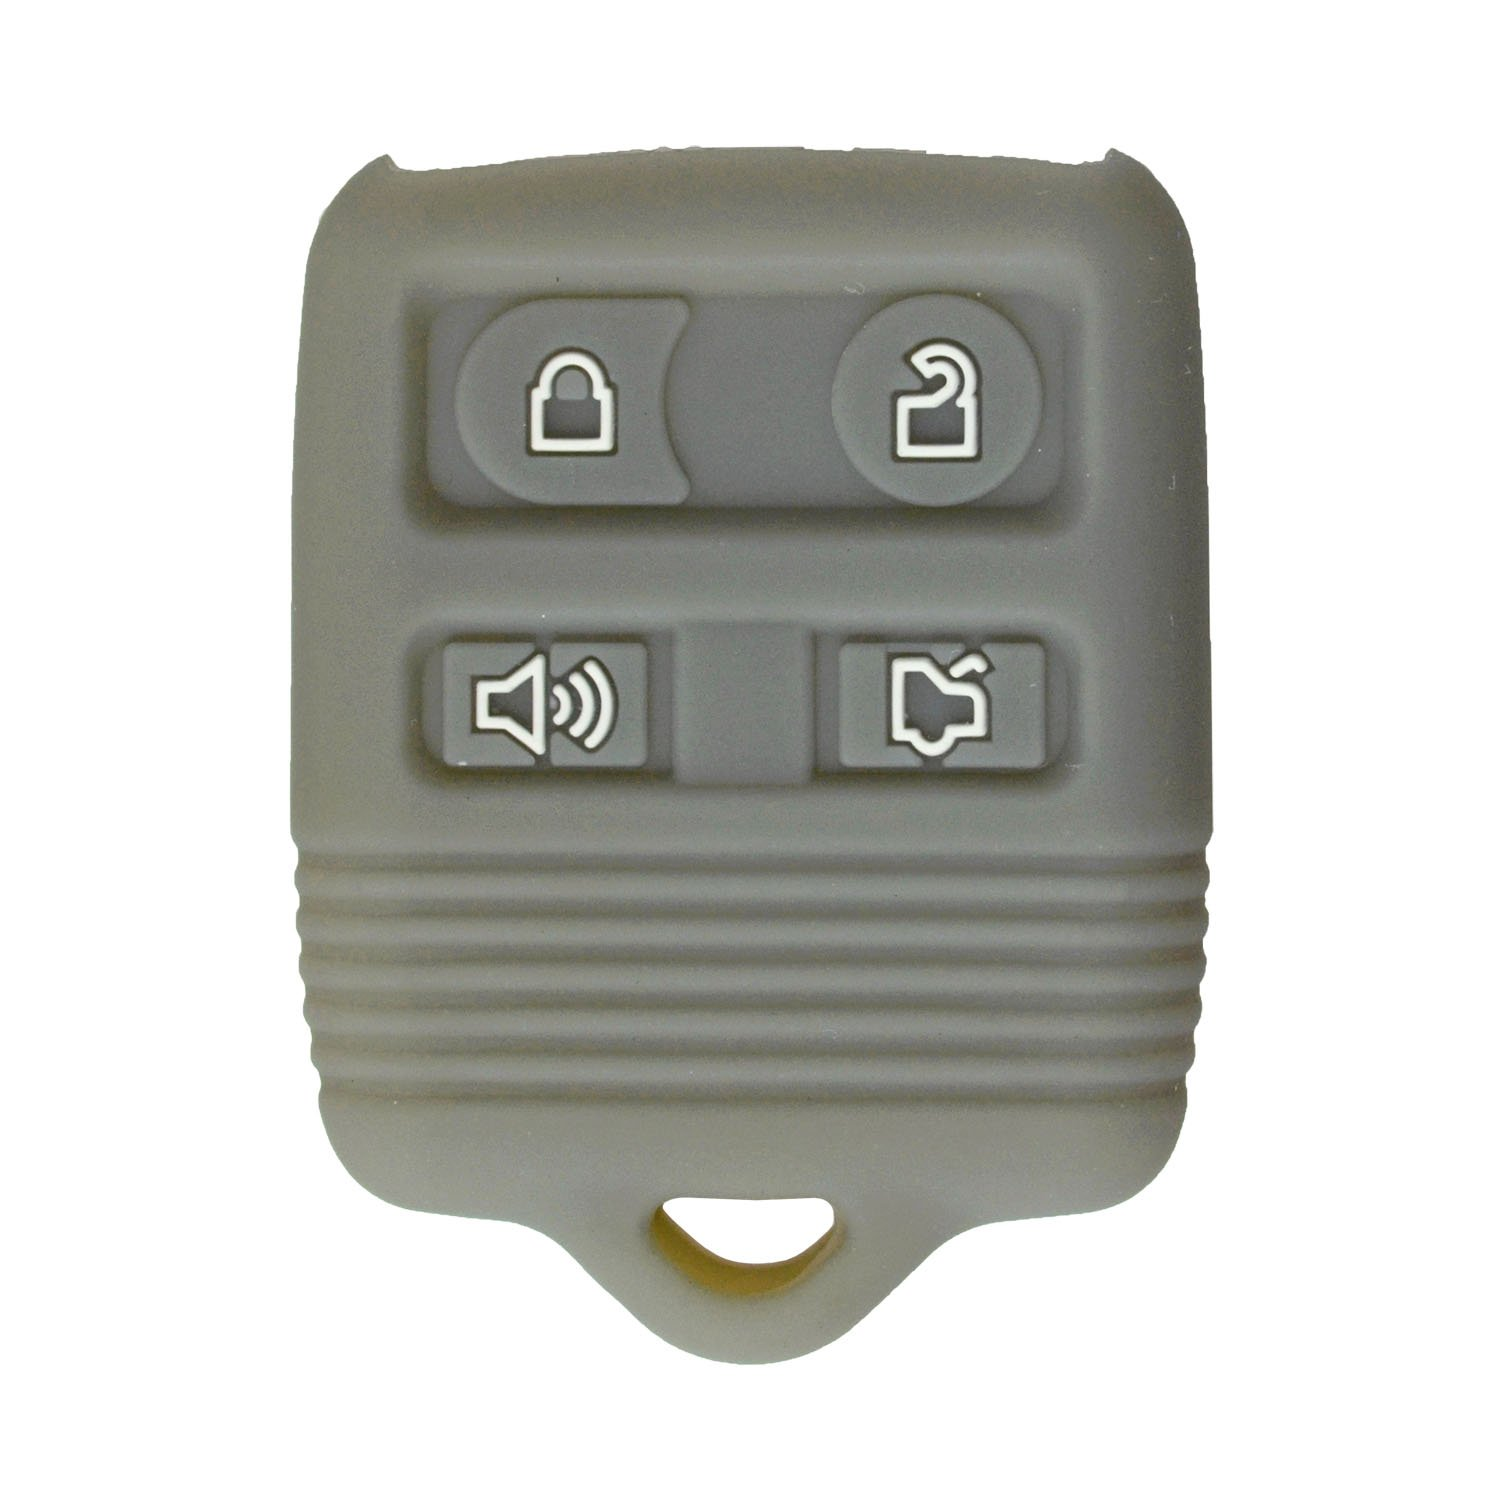 CWTWB1U345 Part #2S4T-15K601-AB with Keytag Return Service qualitykeylessplus Protective Rubber Silicone Cover for 4 Button Ford Keyless Entry Remote Fobs FCC ID CWTWB1U331